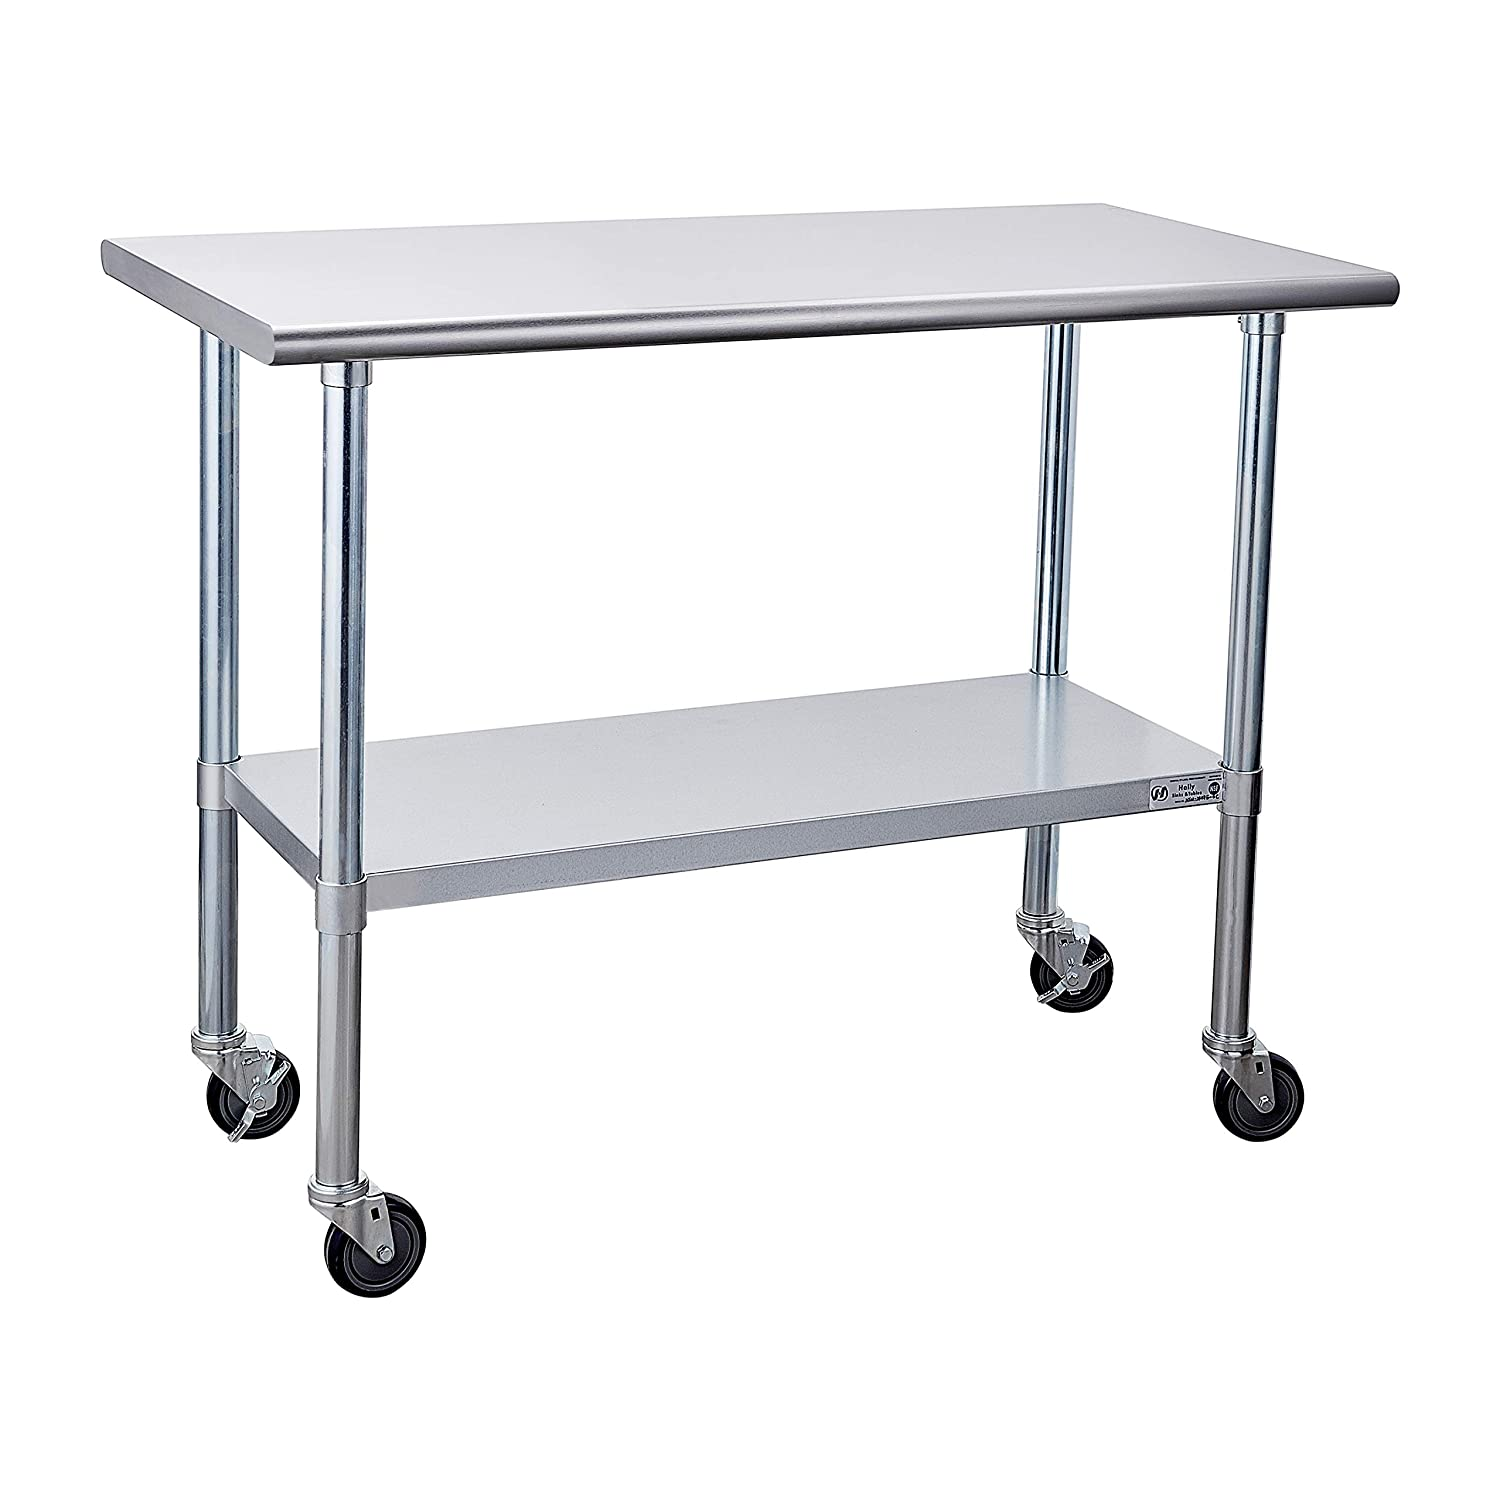 Stainless Steel Table for Prep & Work 24 x 48 Inches with Caster Wheels, NSF Commercial Heavy Duty Table with Undershelf and Galvanized Legs for Restaurant, Home and Hotel